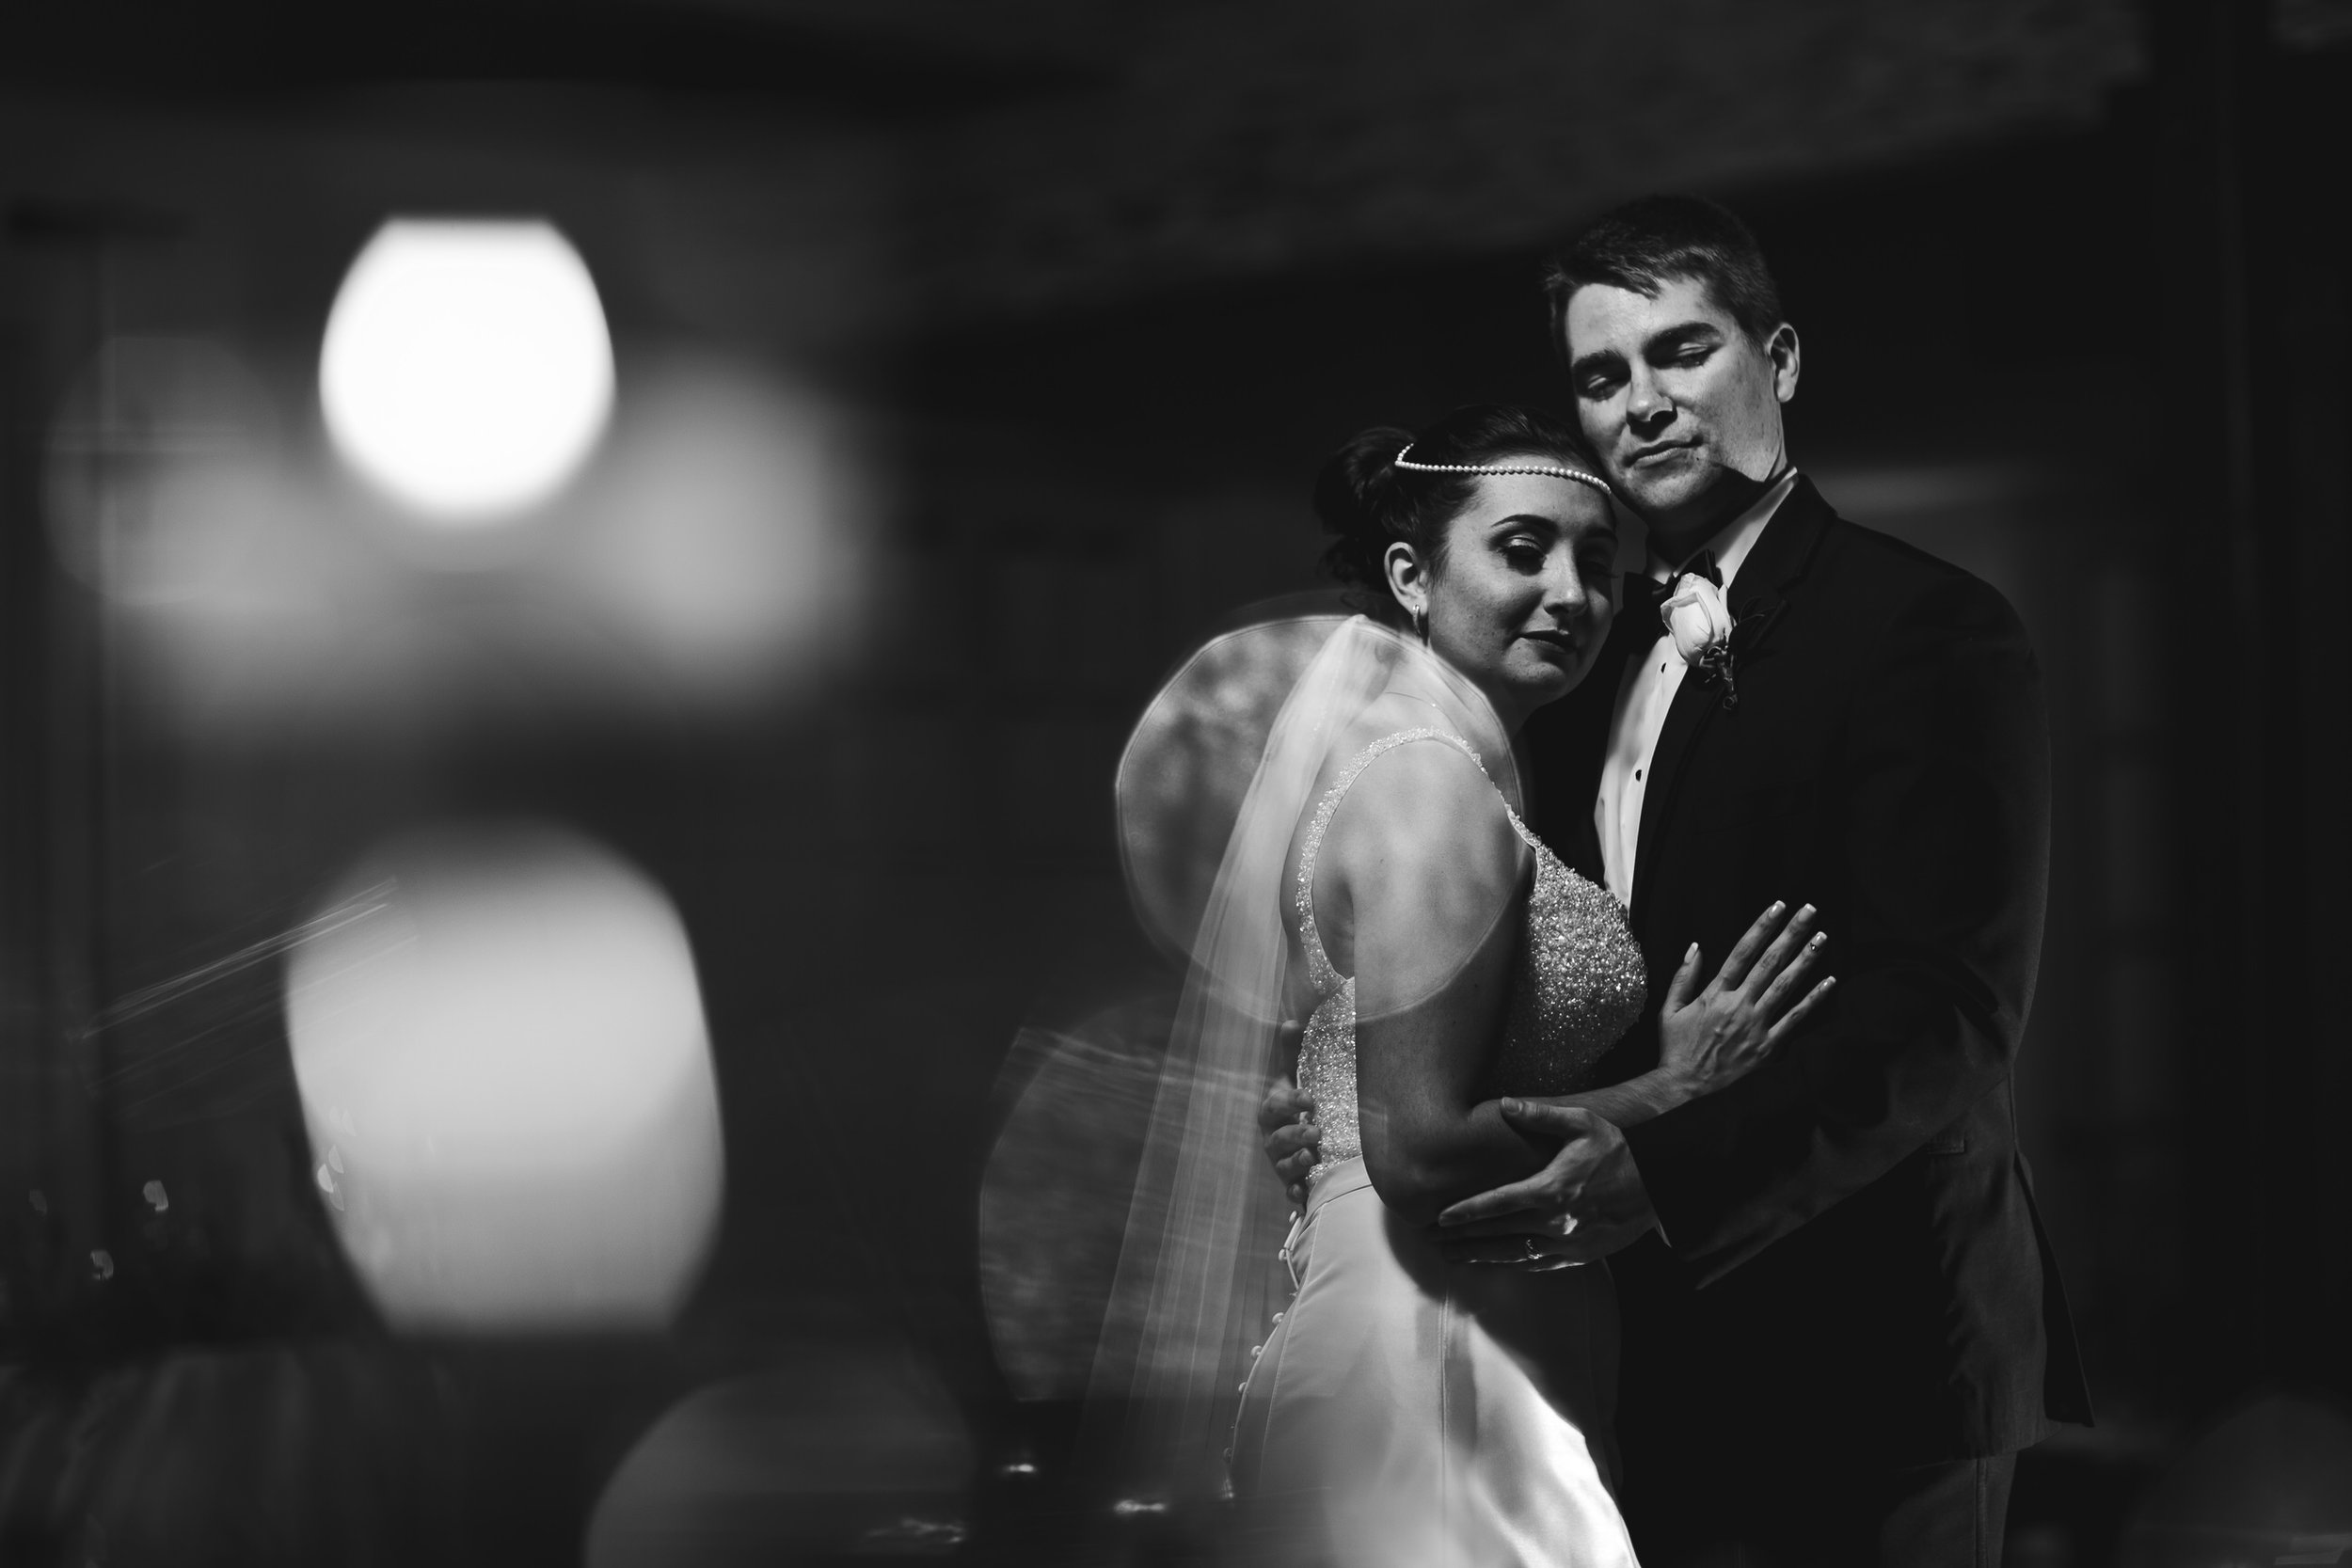 timless_classic_wedding_photography_tiny_house_photo_bride_groom_black_and_white.jpg